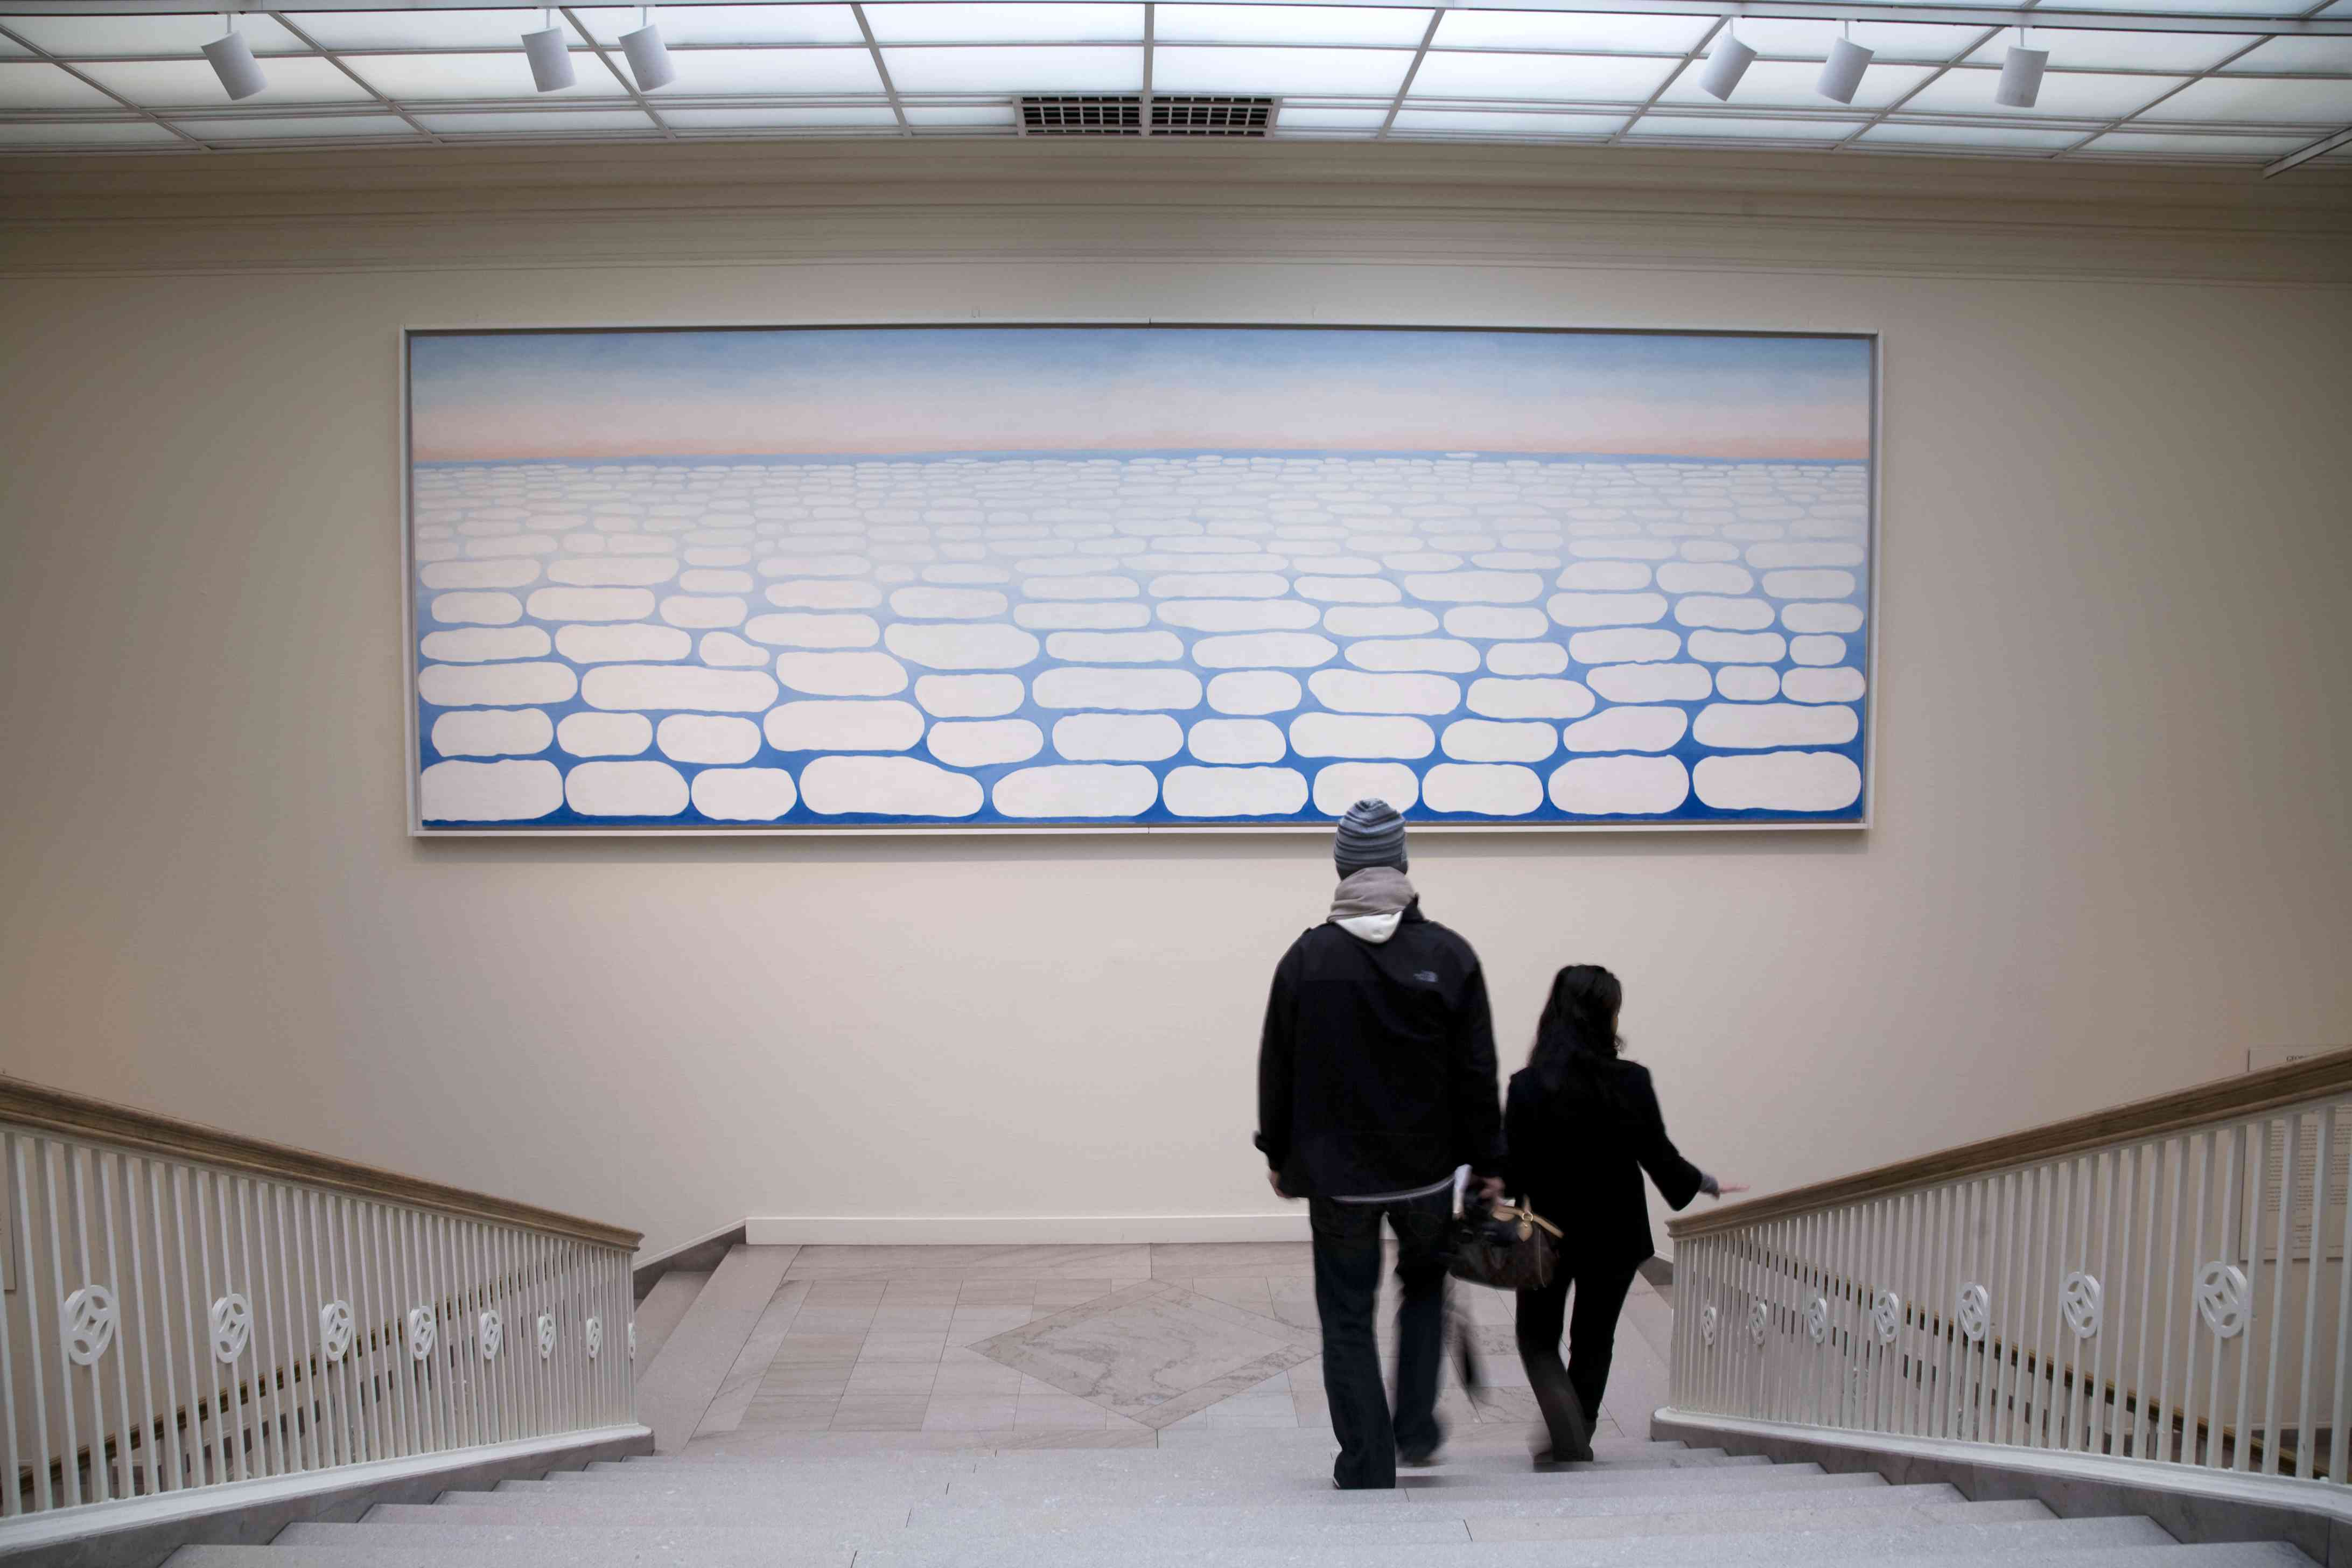 Two people descend the stairs in front of Georgia O'Keeffe's painting of clouds on the horizon